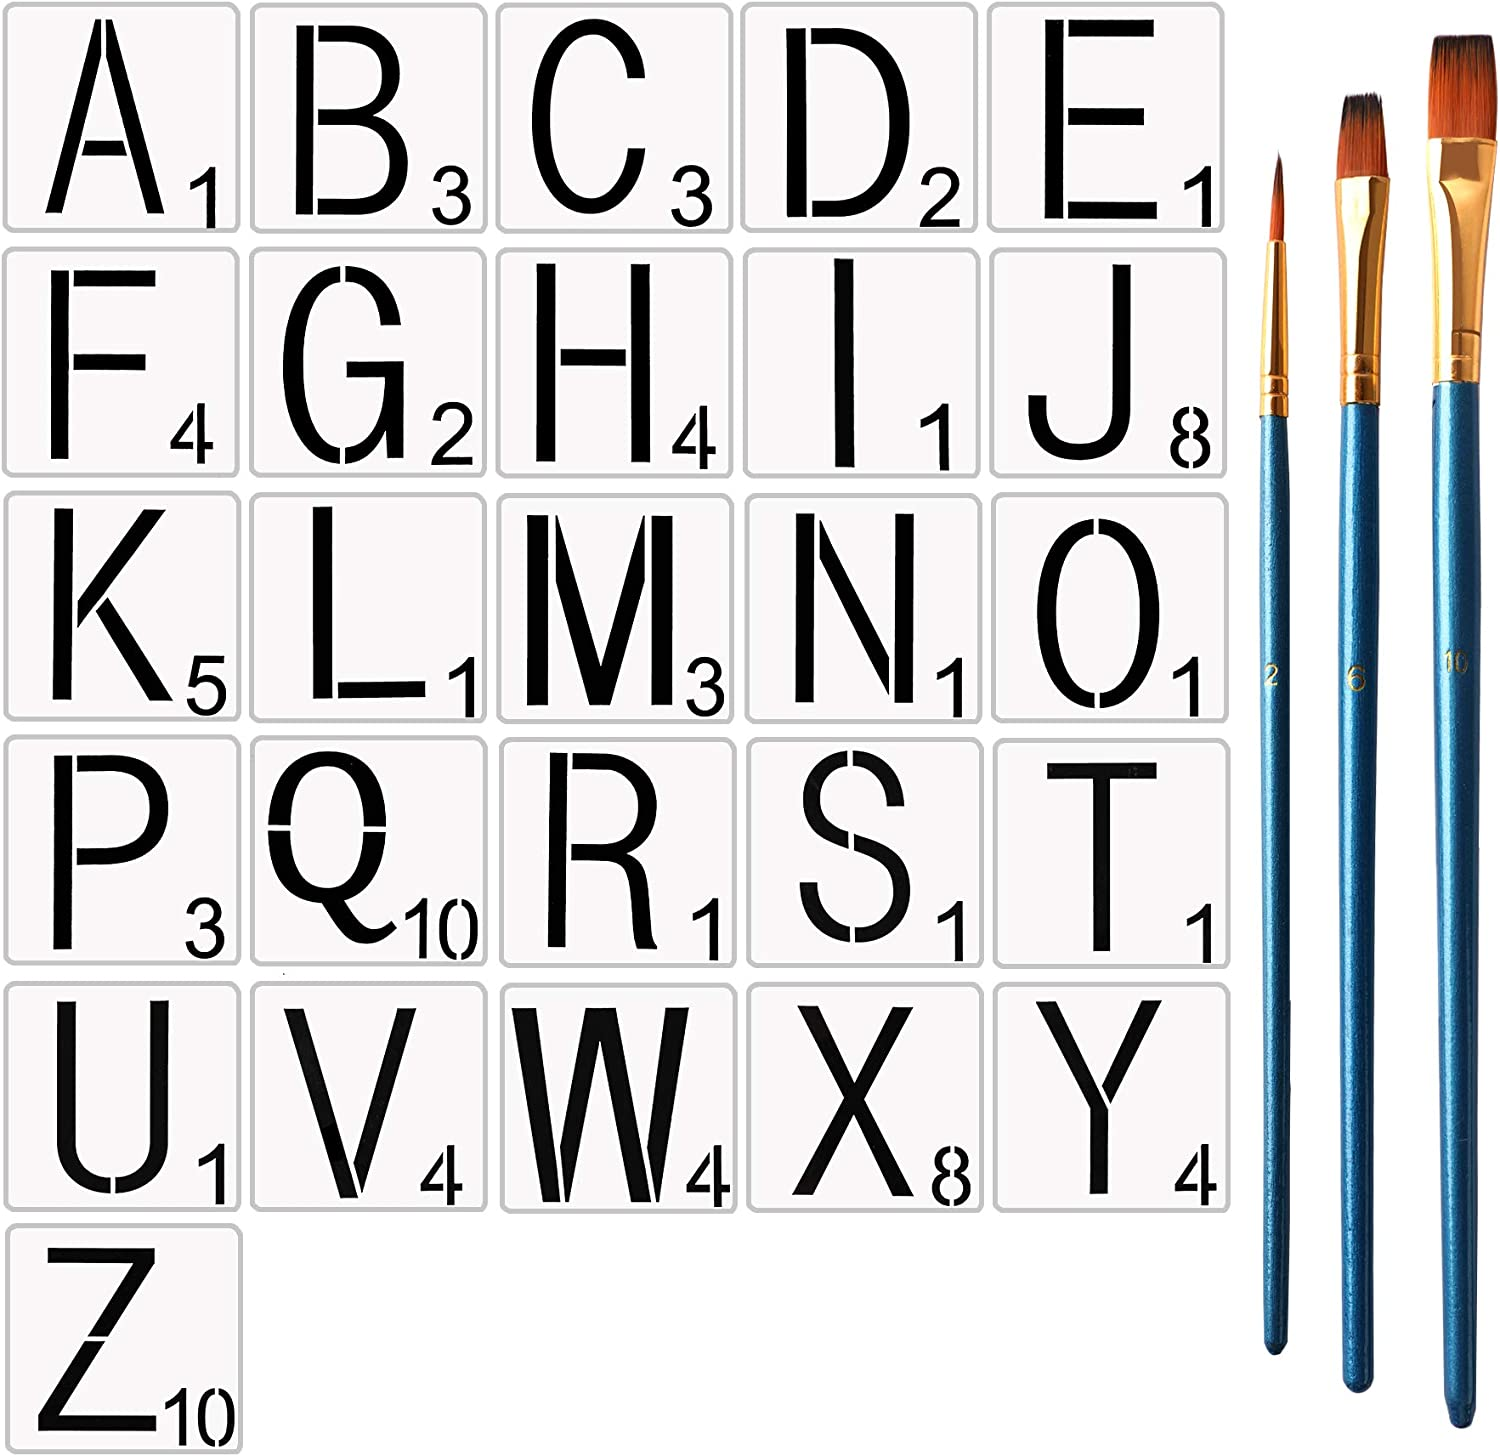 4 Inch Scrabble Letters Stencil for Christmas Painting on Wood with 3Piece Painting Brushes,Reusable Tile Stencil, Scrabble Letters for Christmas Wall Decor,Home DIY Crafts,Family Names